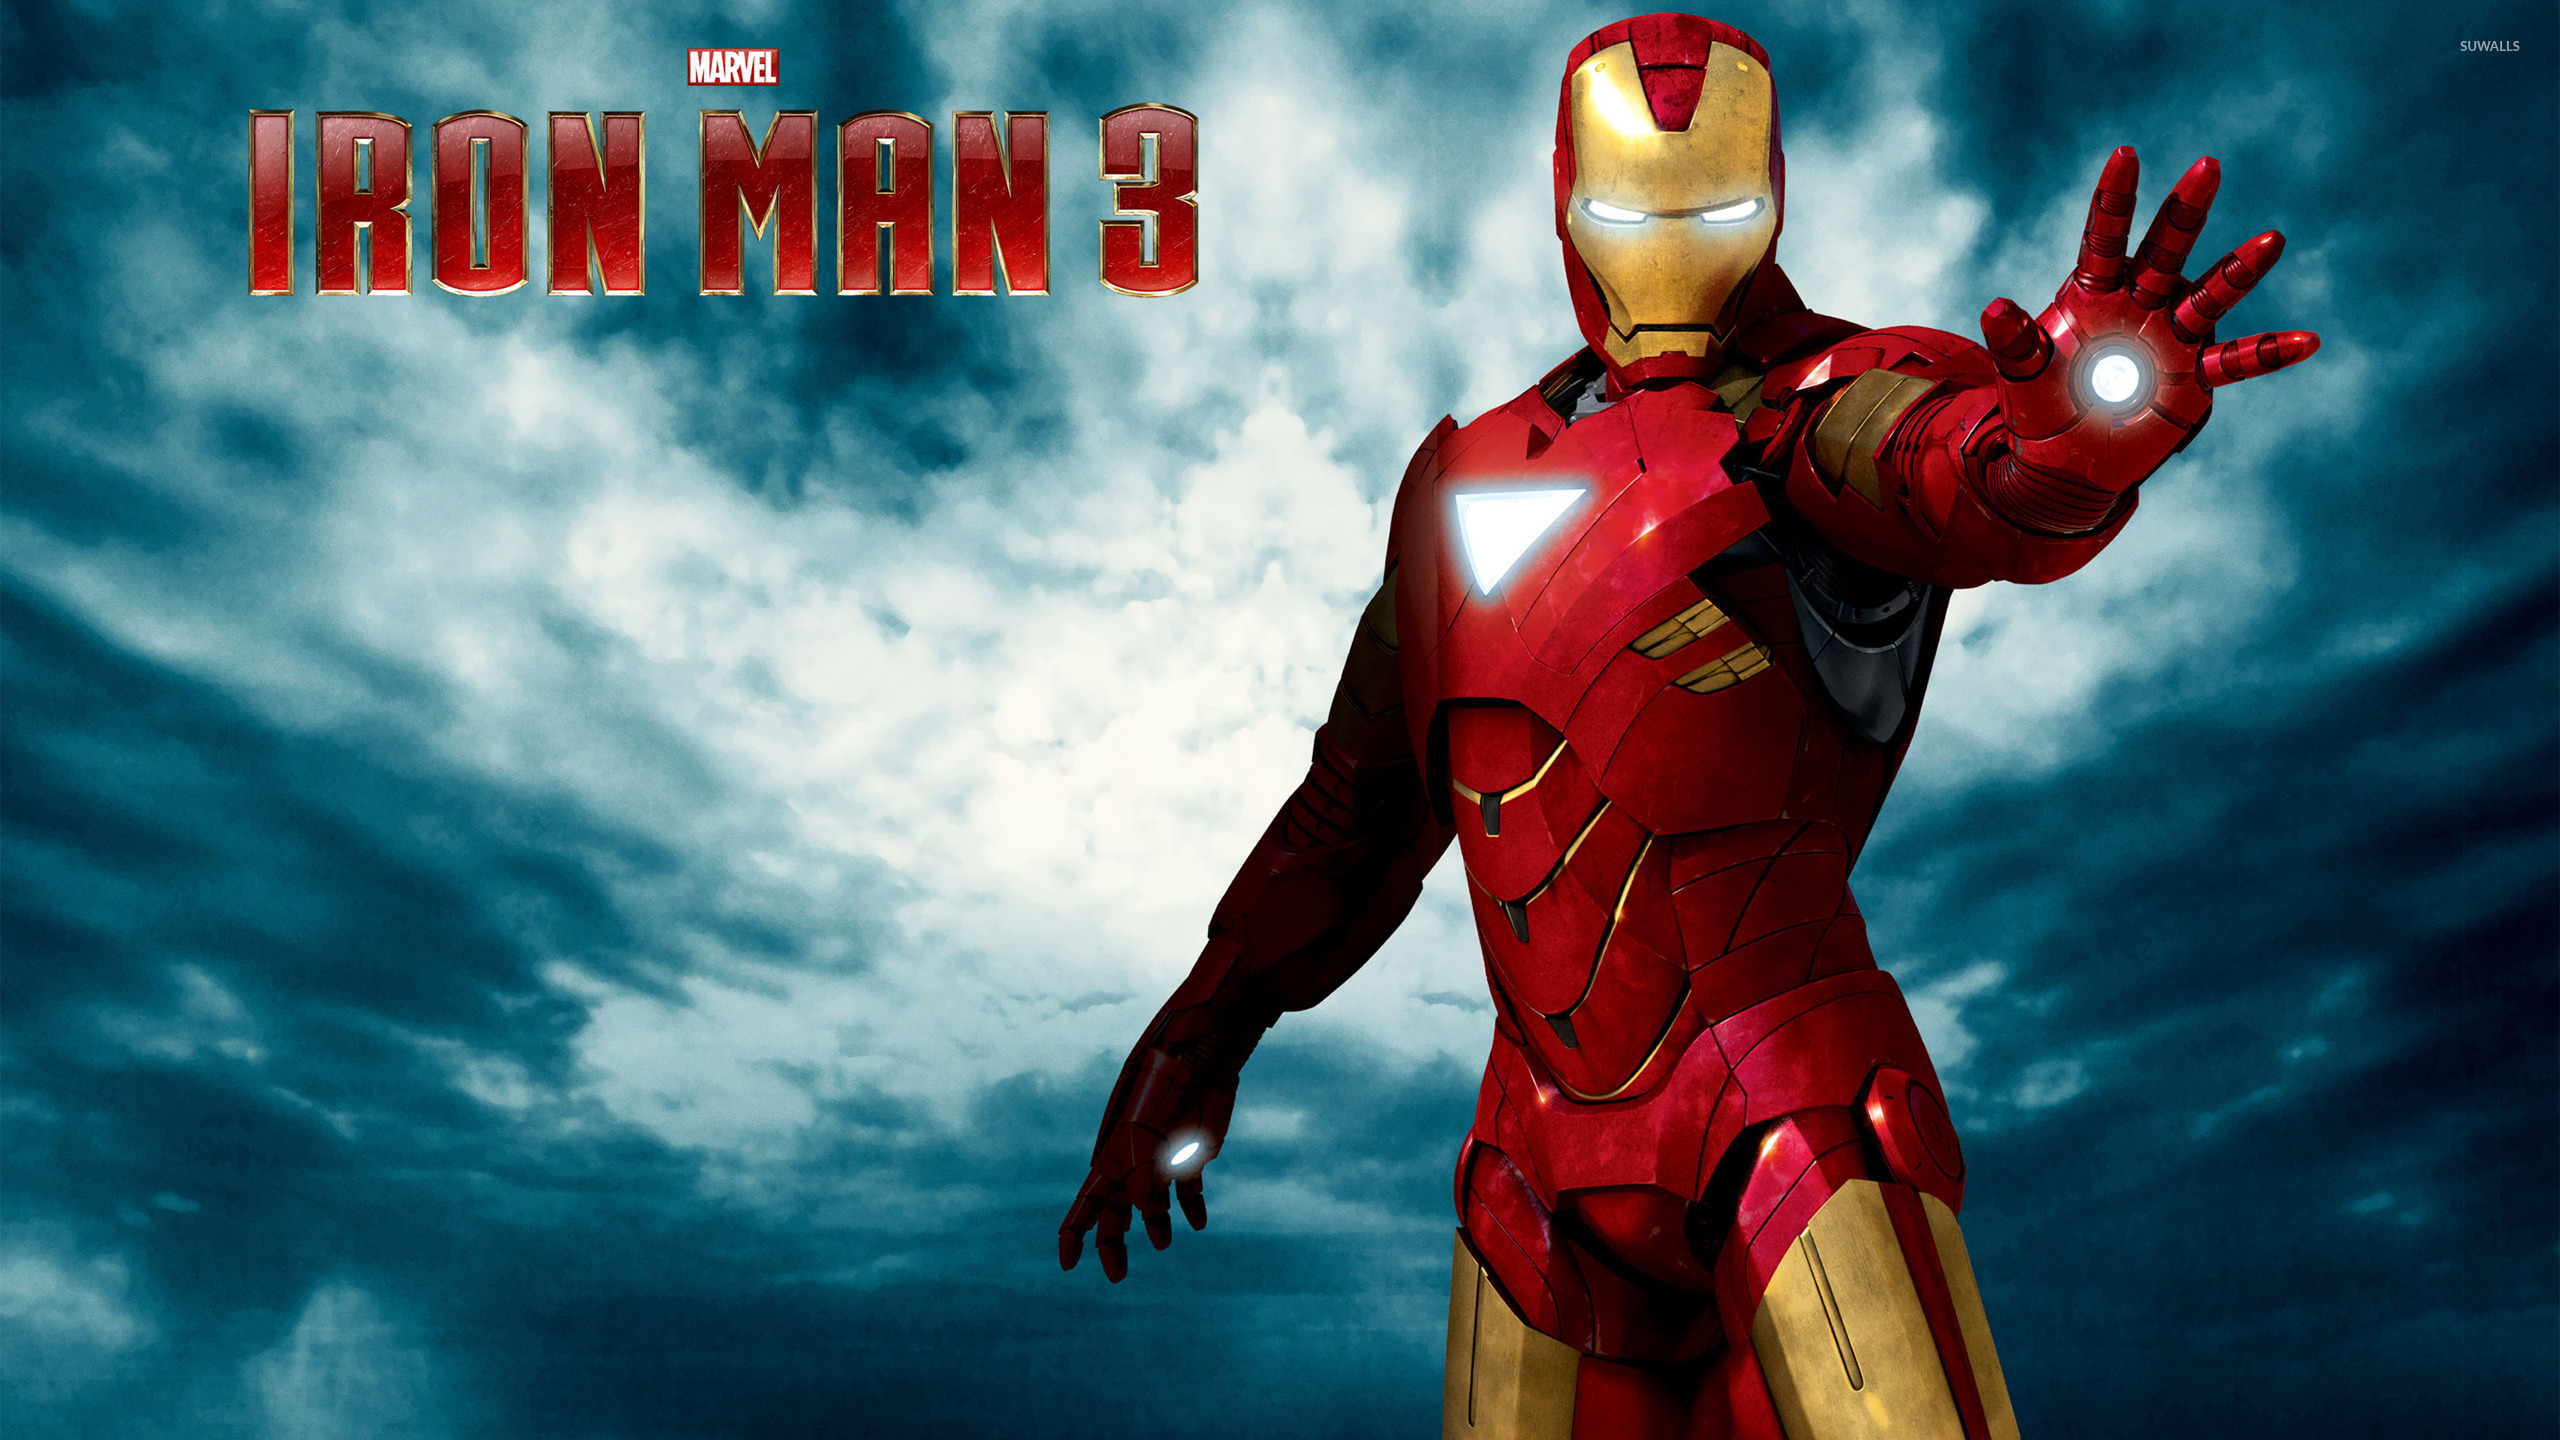 iron man 3 [7] wallpaper - movie wallpapers - #18153